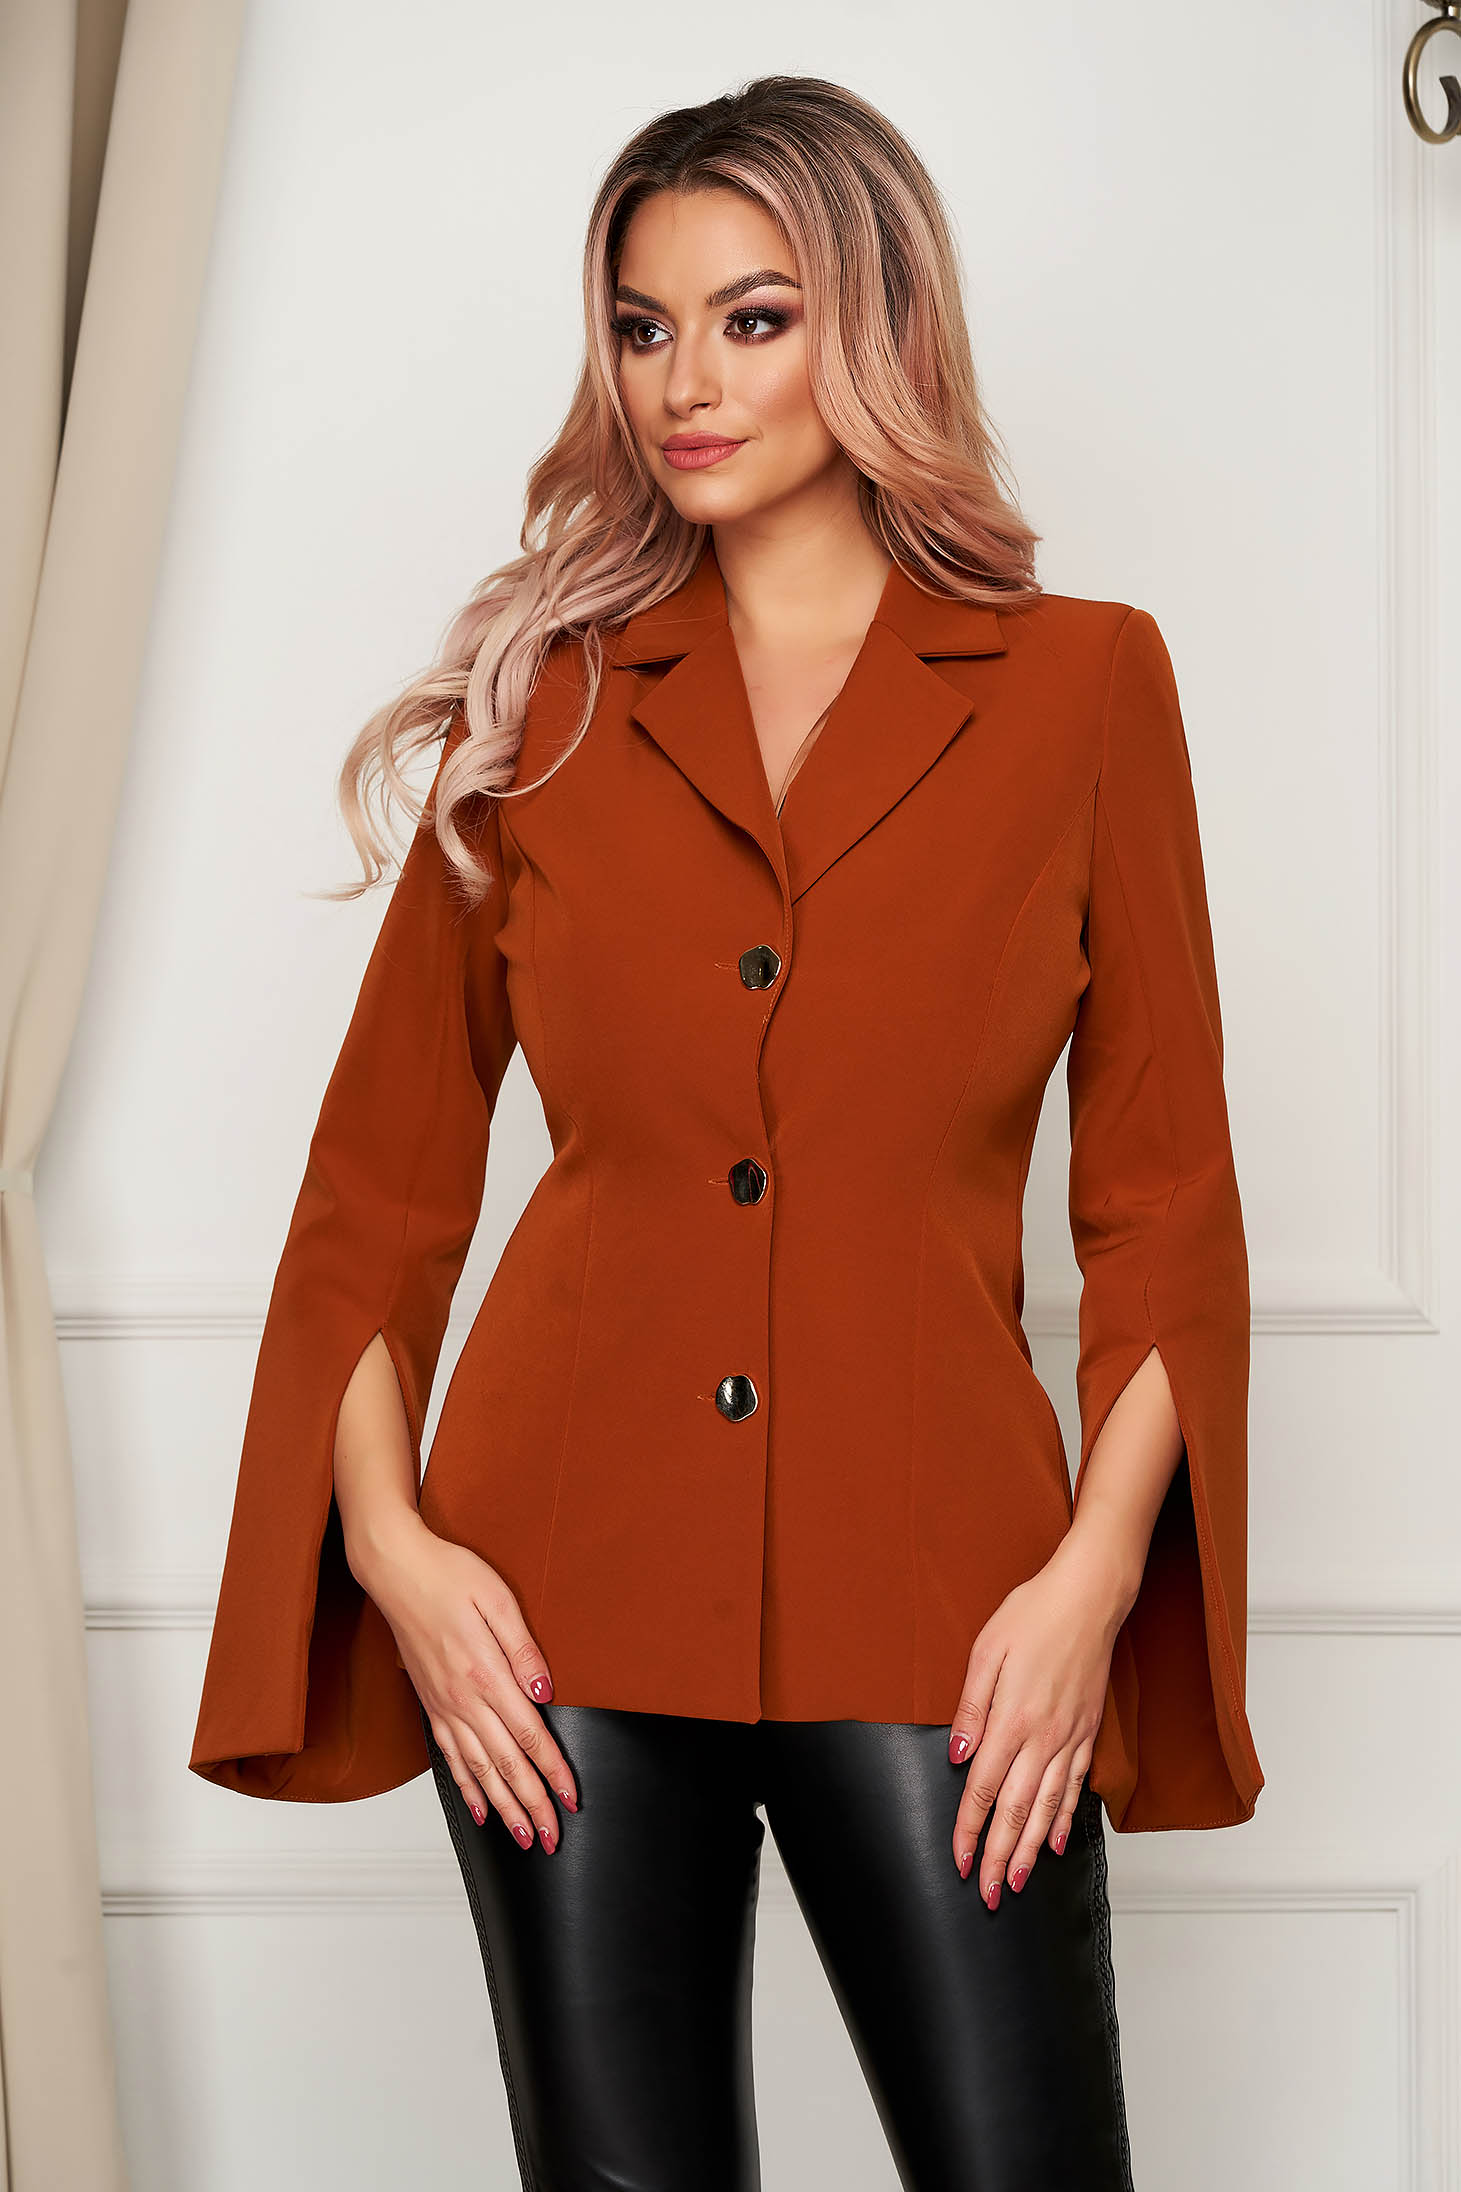 Elegant mustard tented jacket cloth thin fabric with cut-out sleeves